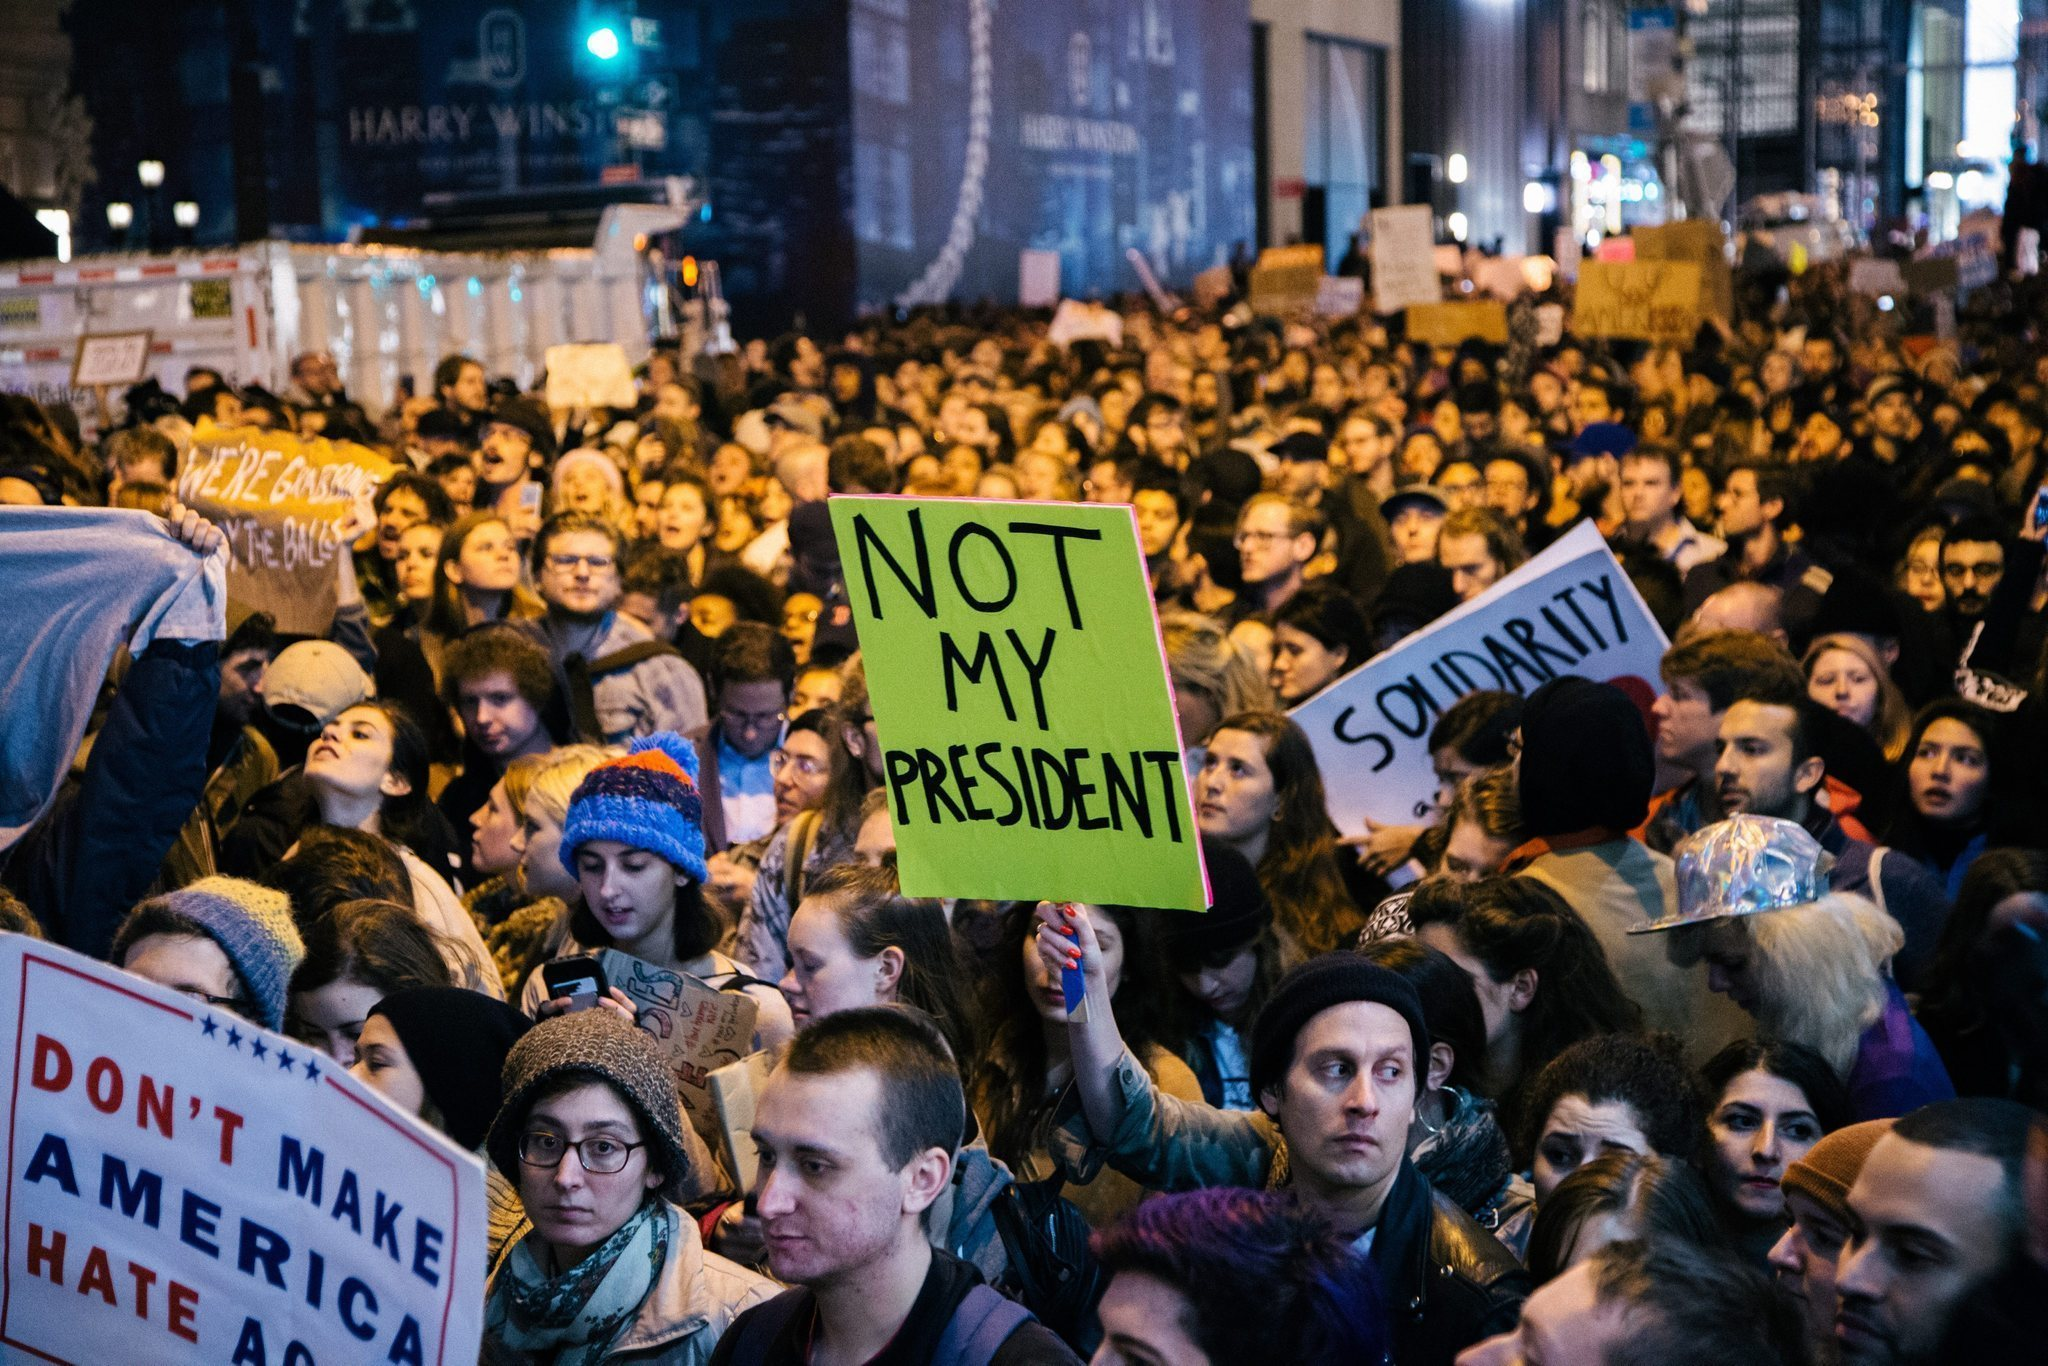 Protestors standing up against the election of Donald Trump in New York City.Photo courtesy of the Los Angeles Times